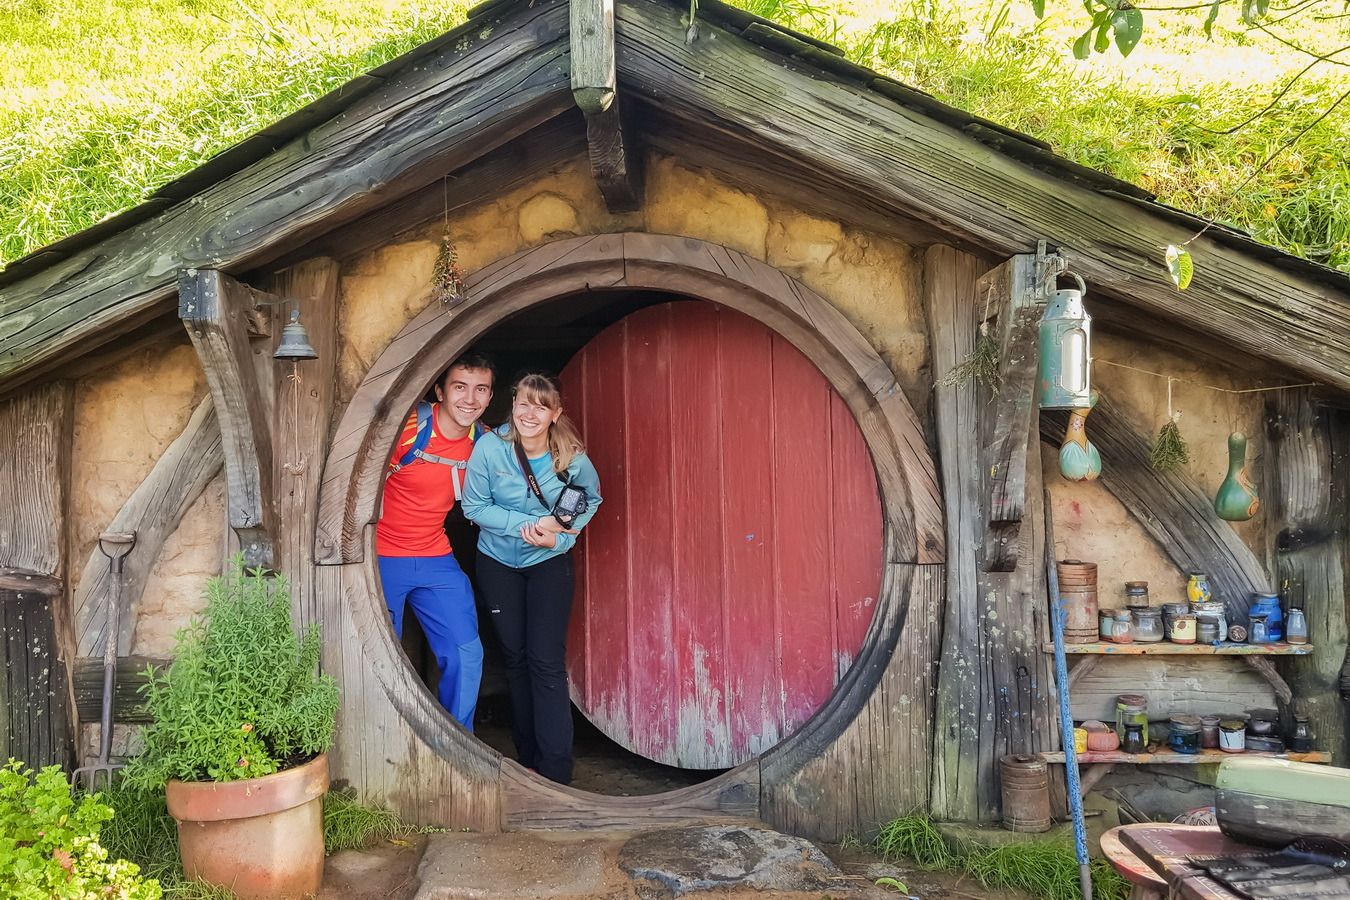 big house,The Hobbiton, The Shire,Хоббитшир, Удел, Хоббитания, Заселье, Край,Matamata, North Island ,New Zealand